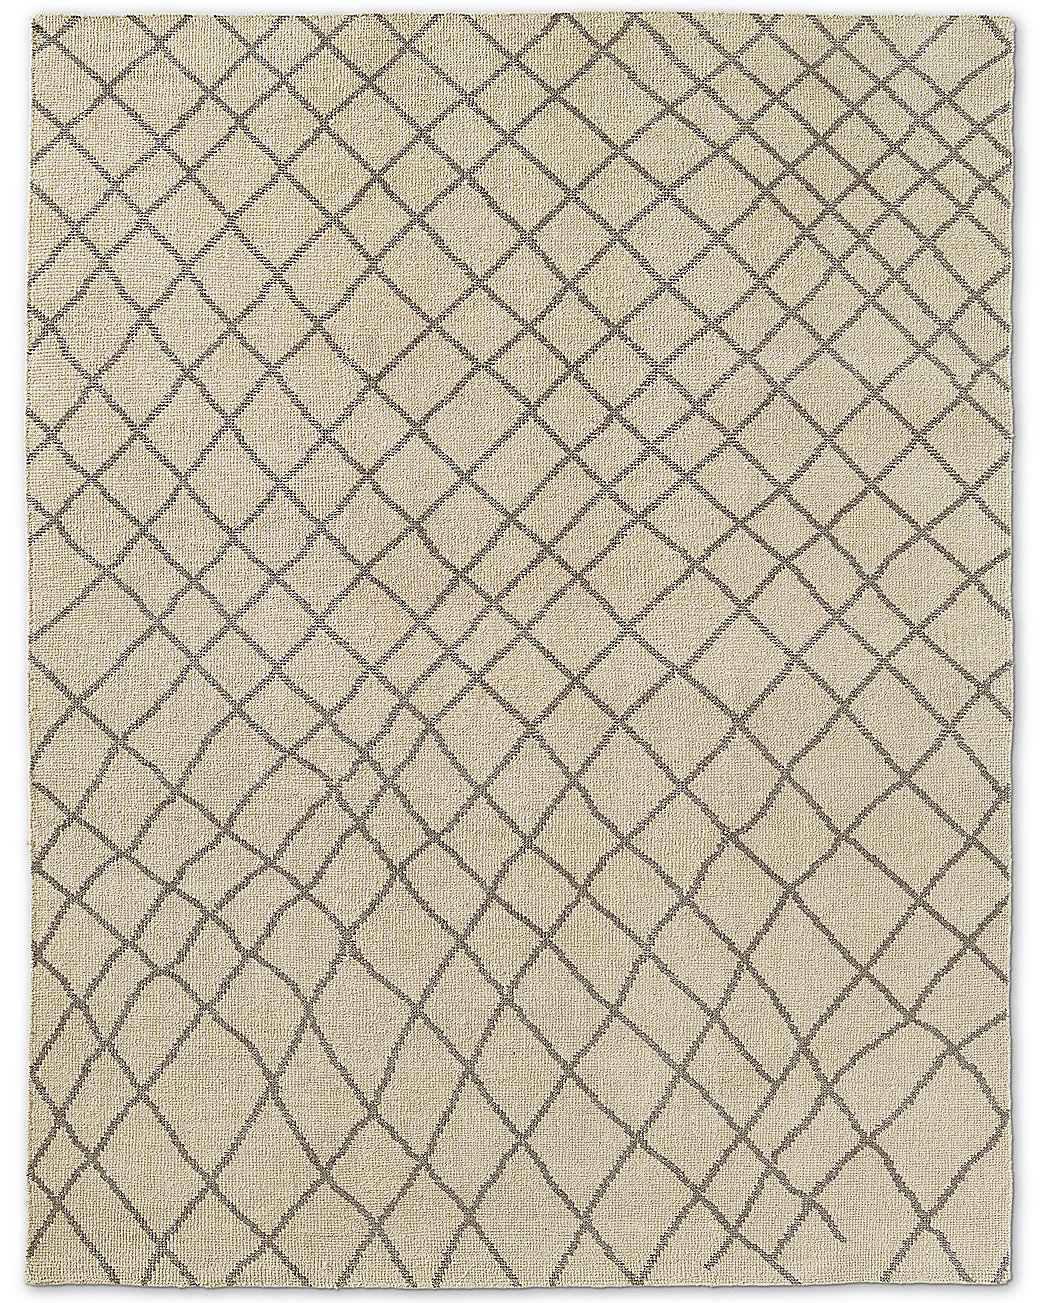 Sketched Diamond Rug - Silver